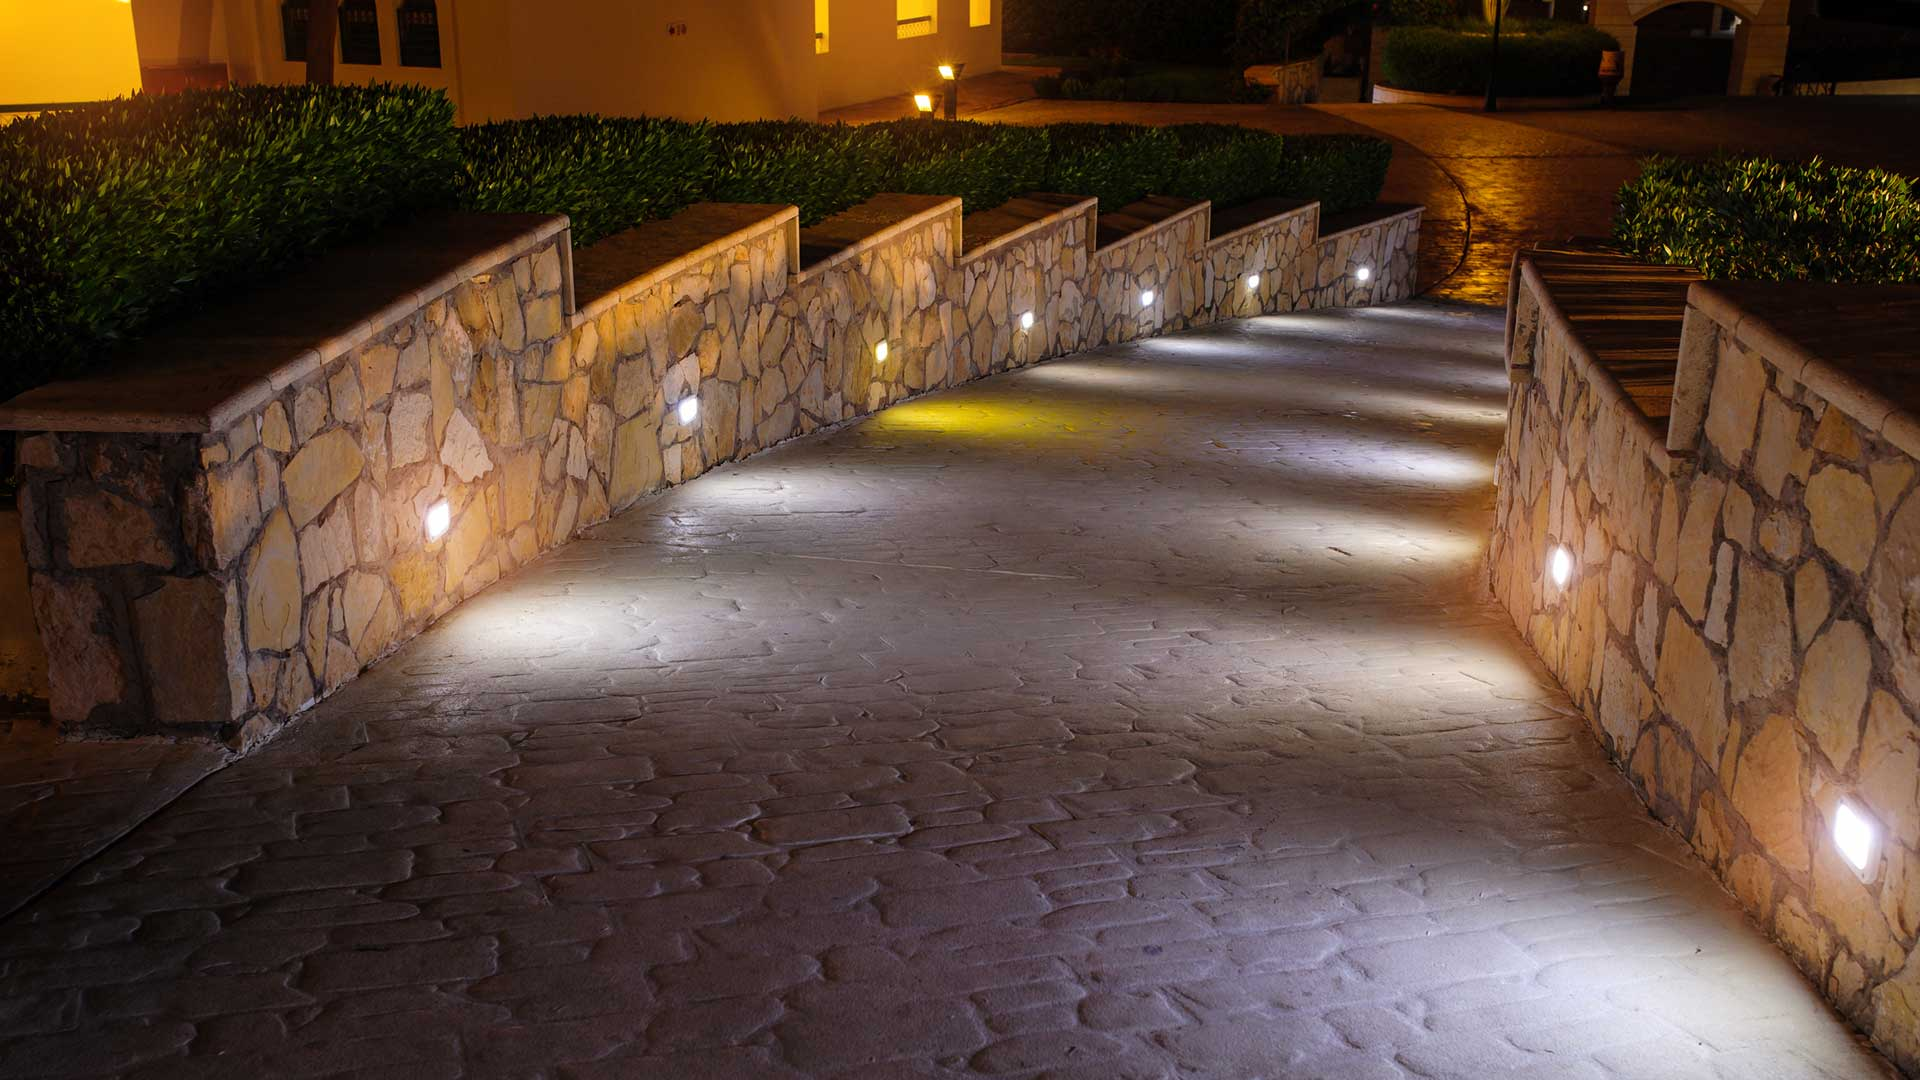 A business in Farragut with walkway and landscape lighting.